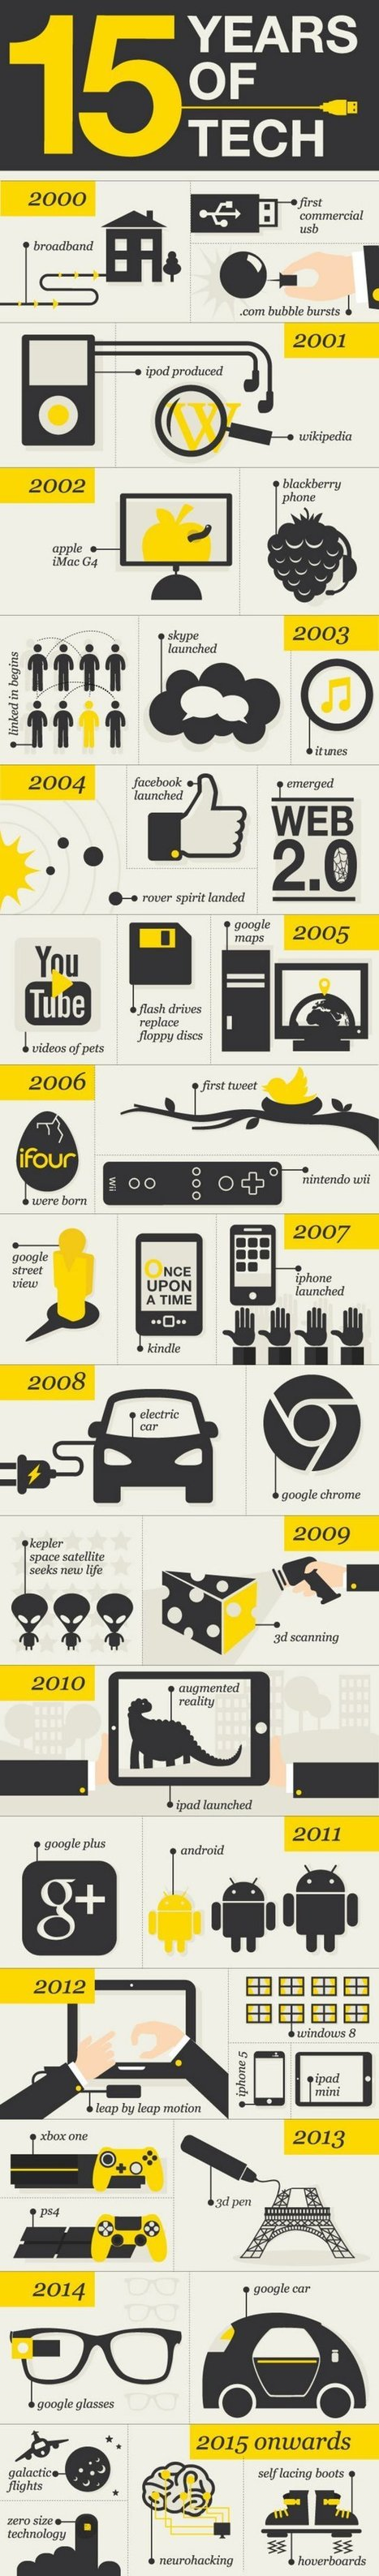 The Last 15 Years of Technological Advancement [Infographic] | | DPG Online | Scoop.it